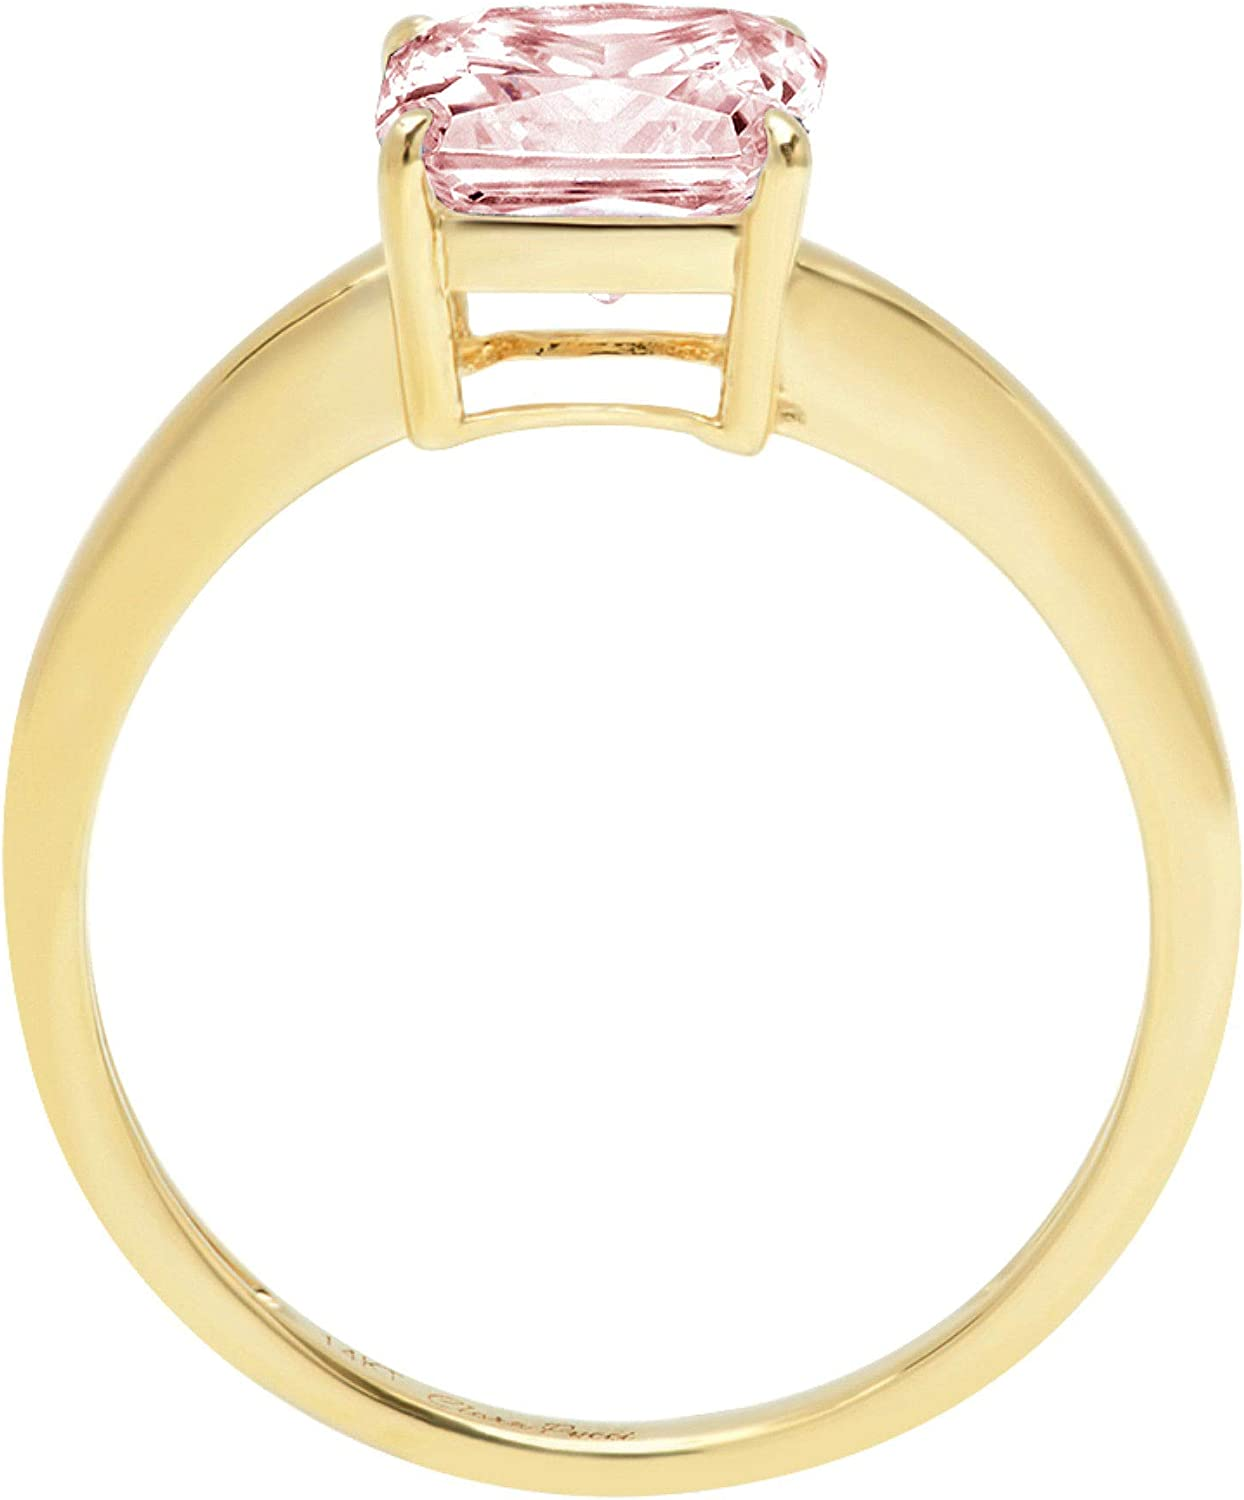 1.45ct Brilliant Asscher Cut Solitaire Pink Simulated Diamond CZ Ideal VVS1 D 4-Prong Classic Designer Statement Ring Solid Real 14k Yellow Gold for Women